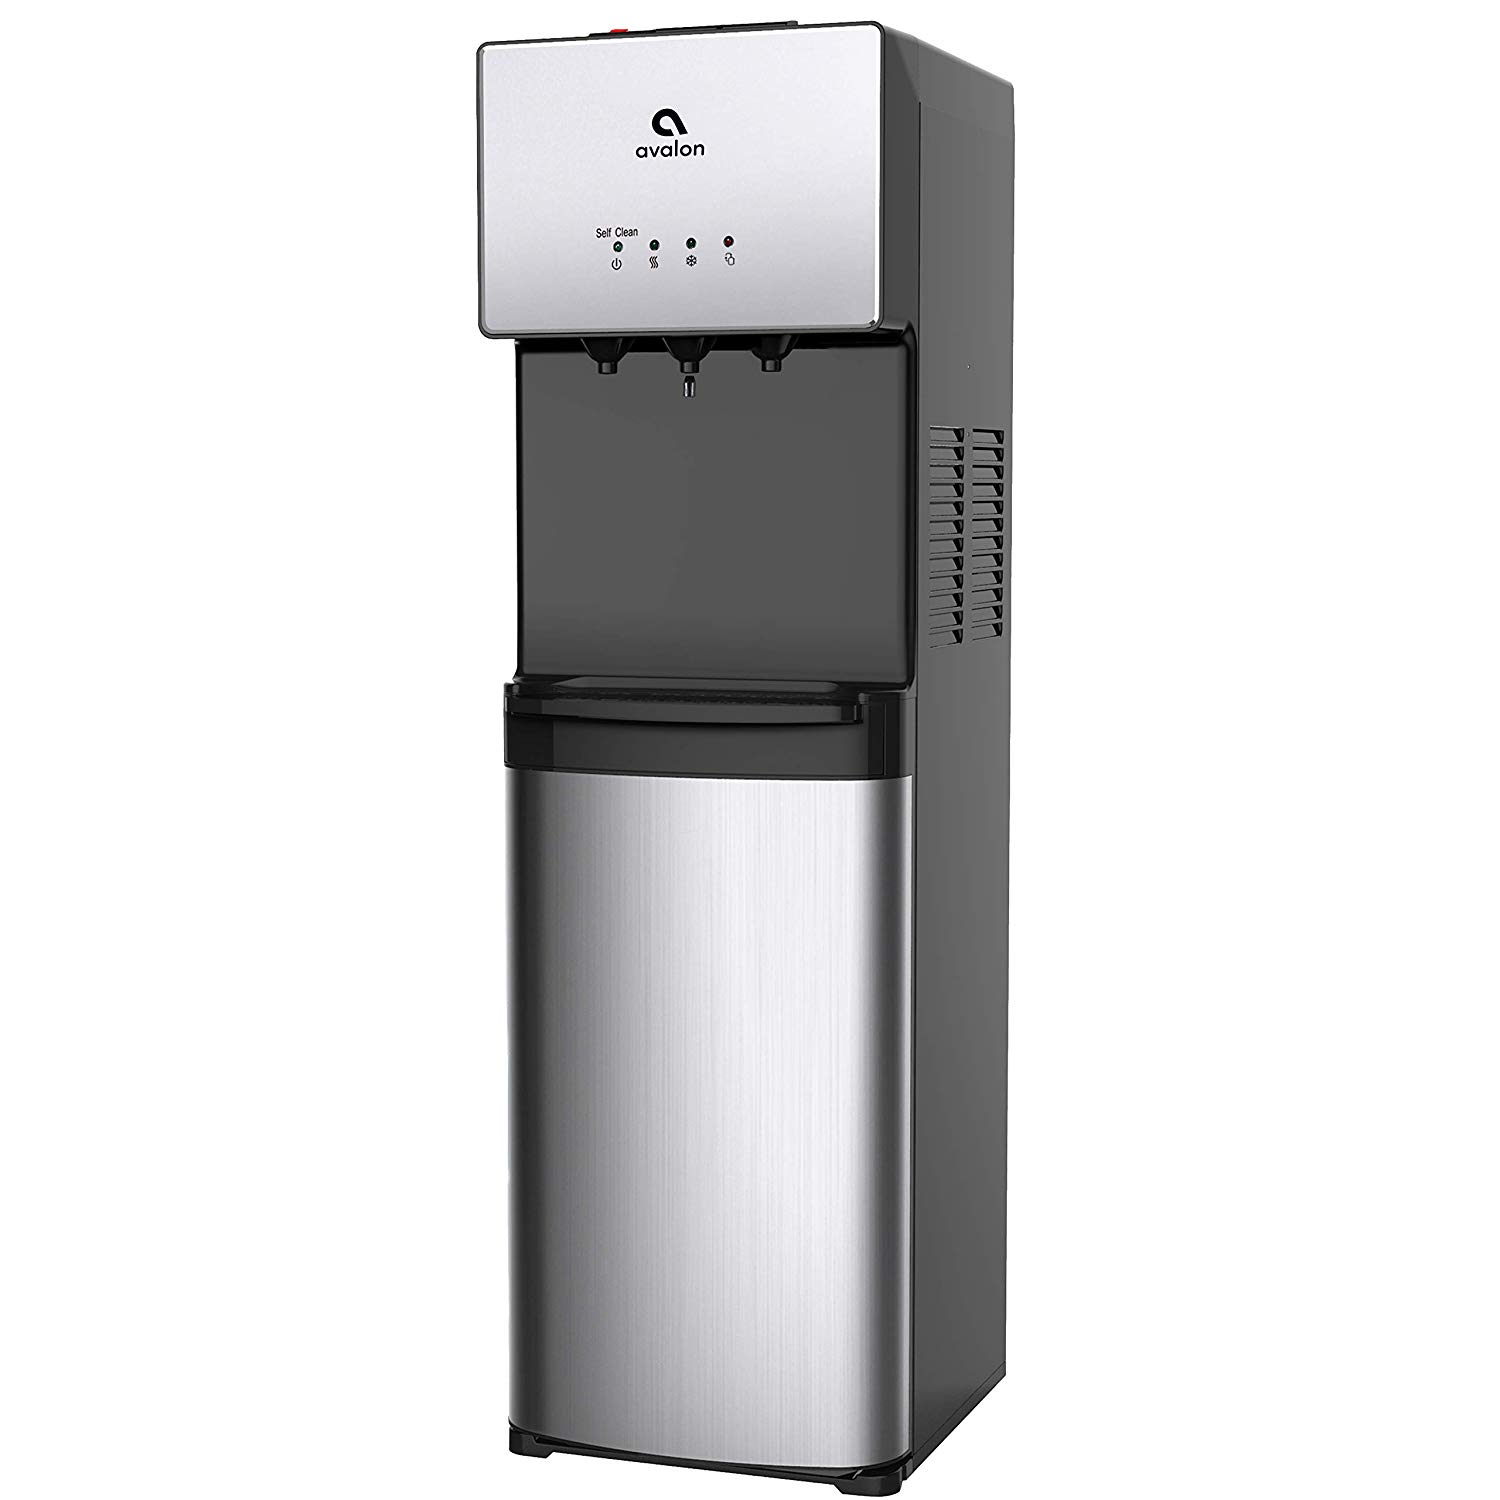 Avalon limited edition self cleaning water cooler water dispenser – 3 temperature settings